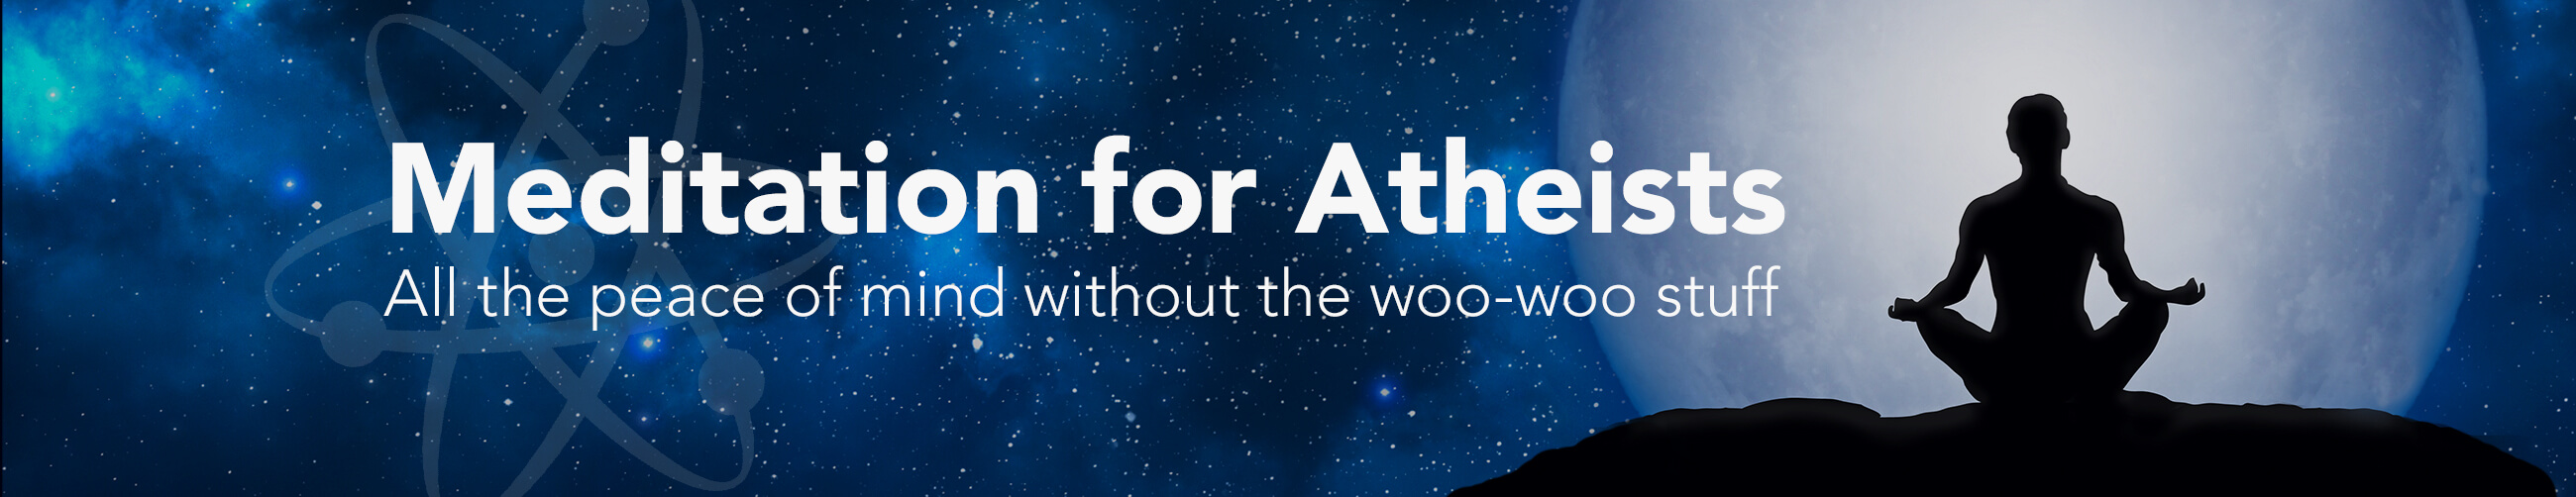 Meditation for Atheists, All the peace of mind without the woo-woo stuff